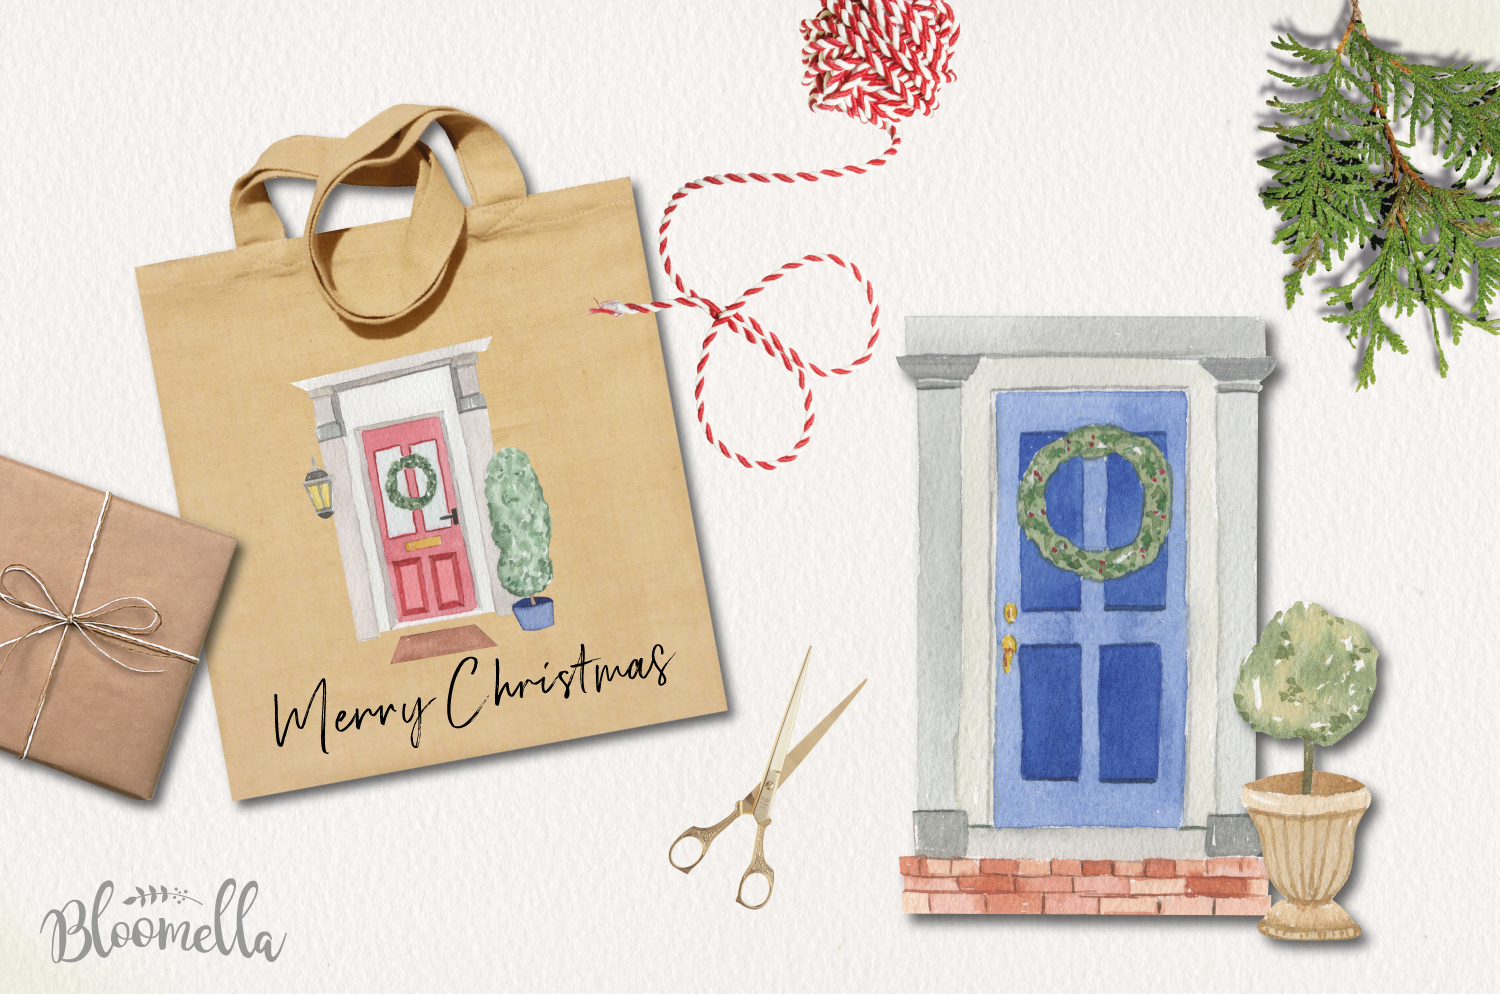 Festive Door Elements Watercolor Bushes Christmas Holidays example image 3